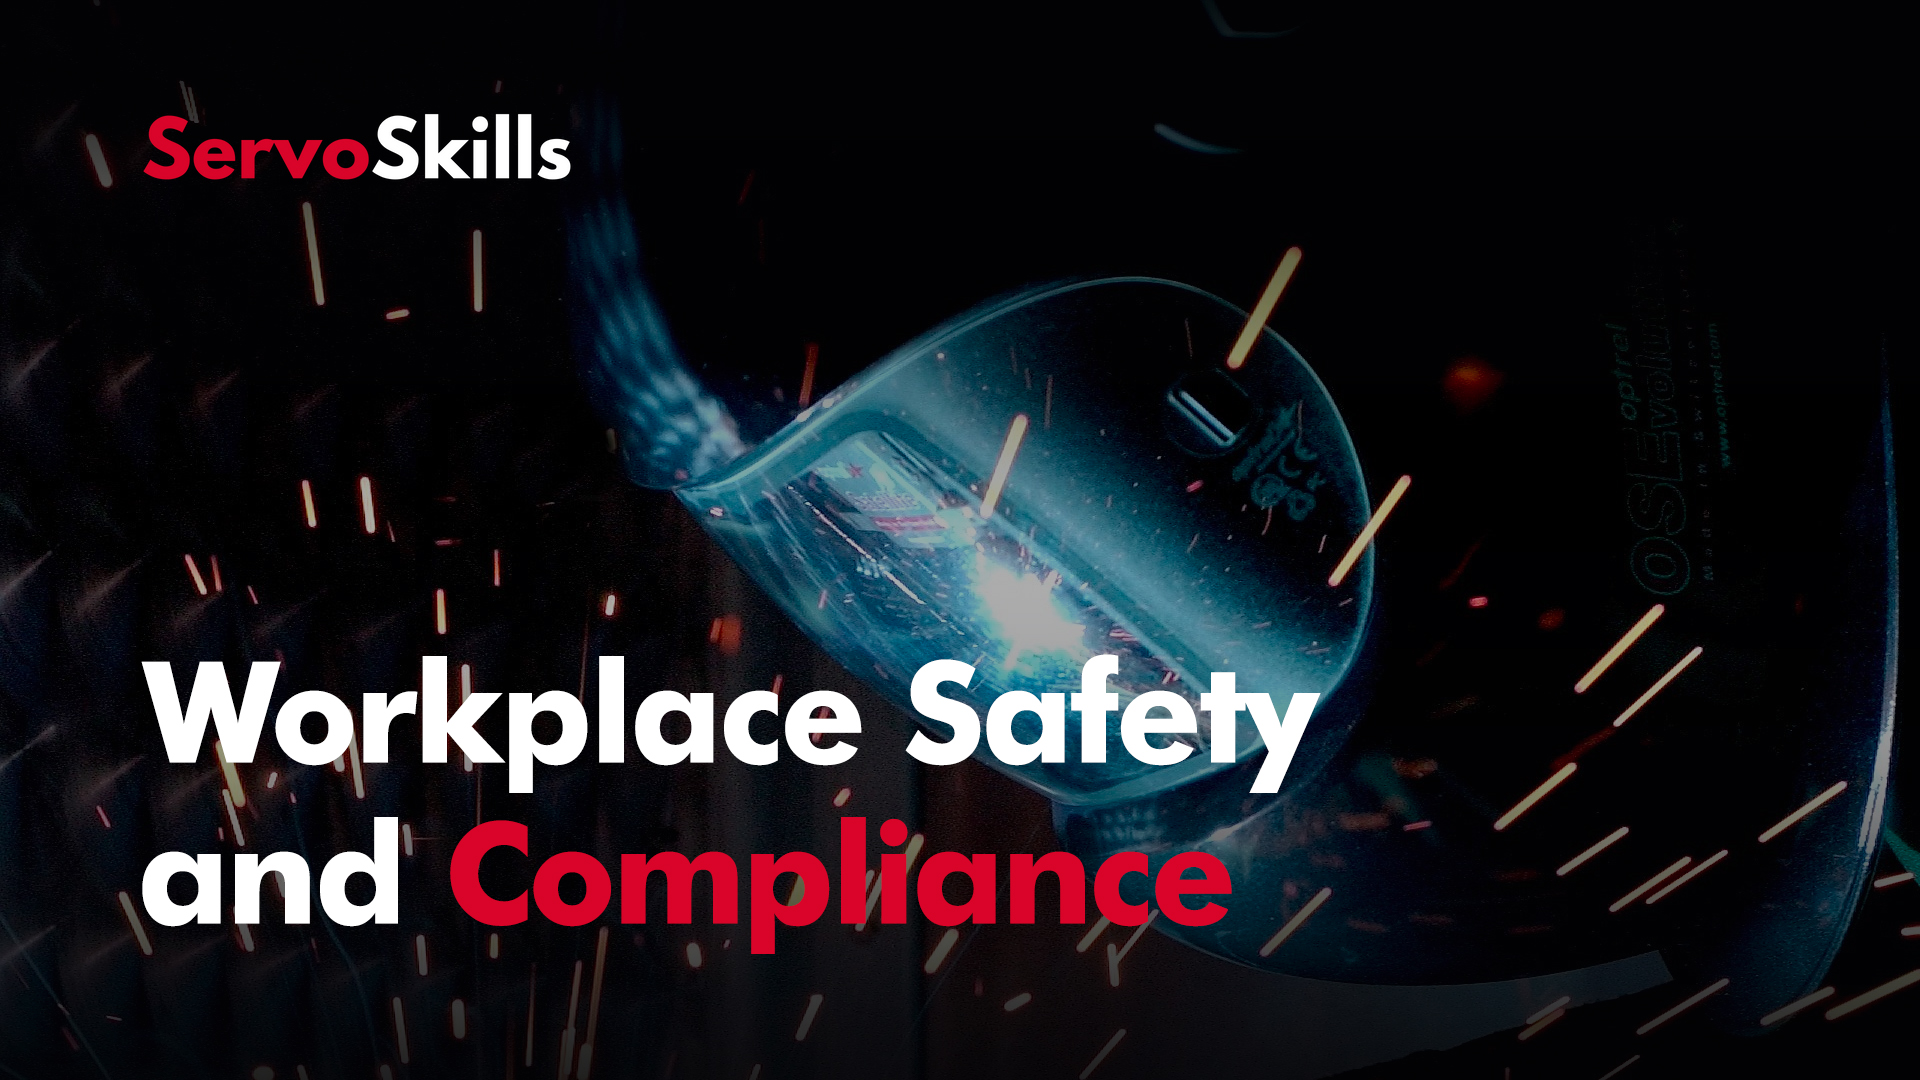 Workplace Safety and Compliance